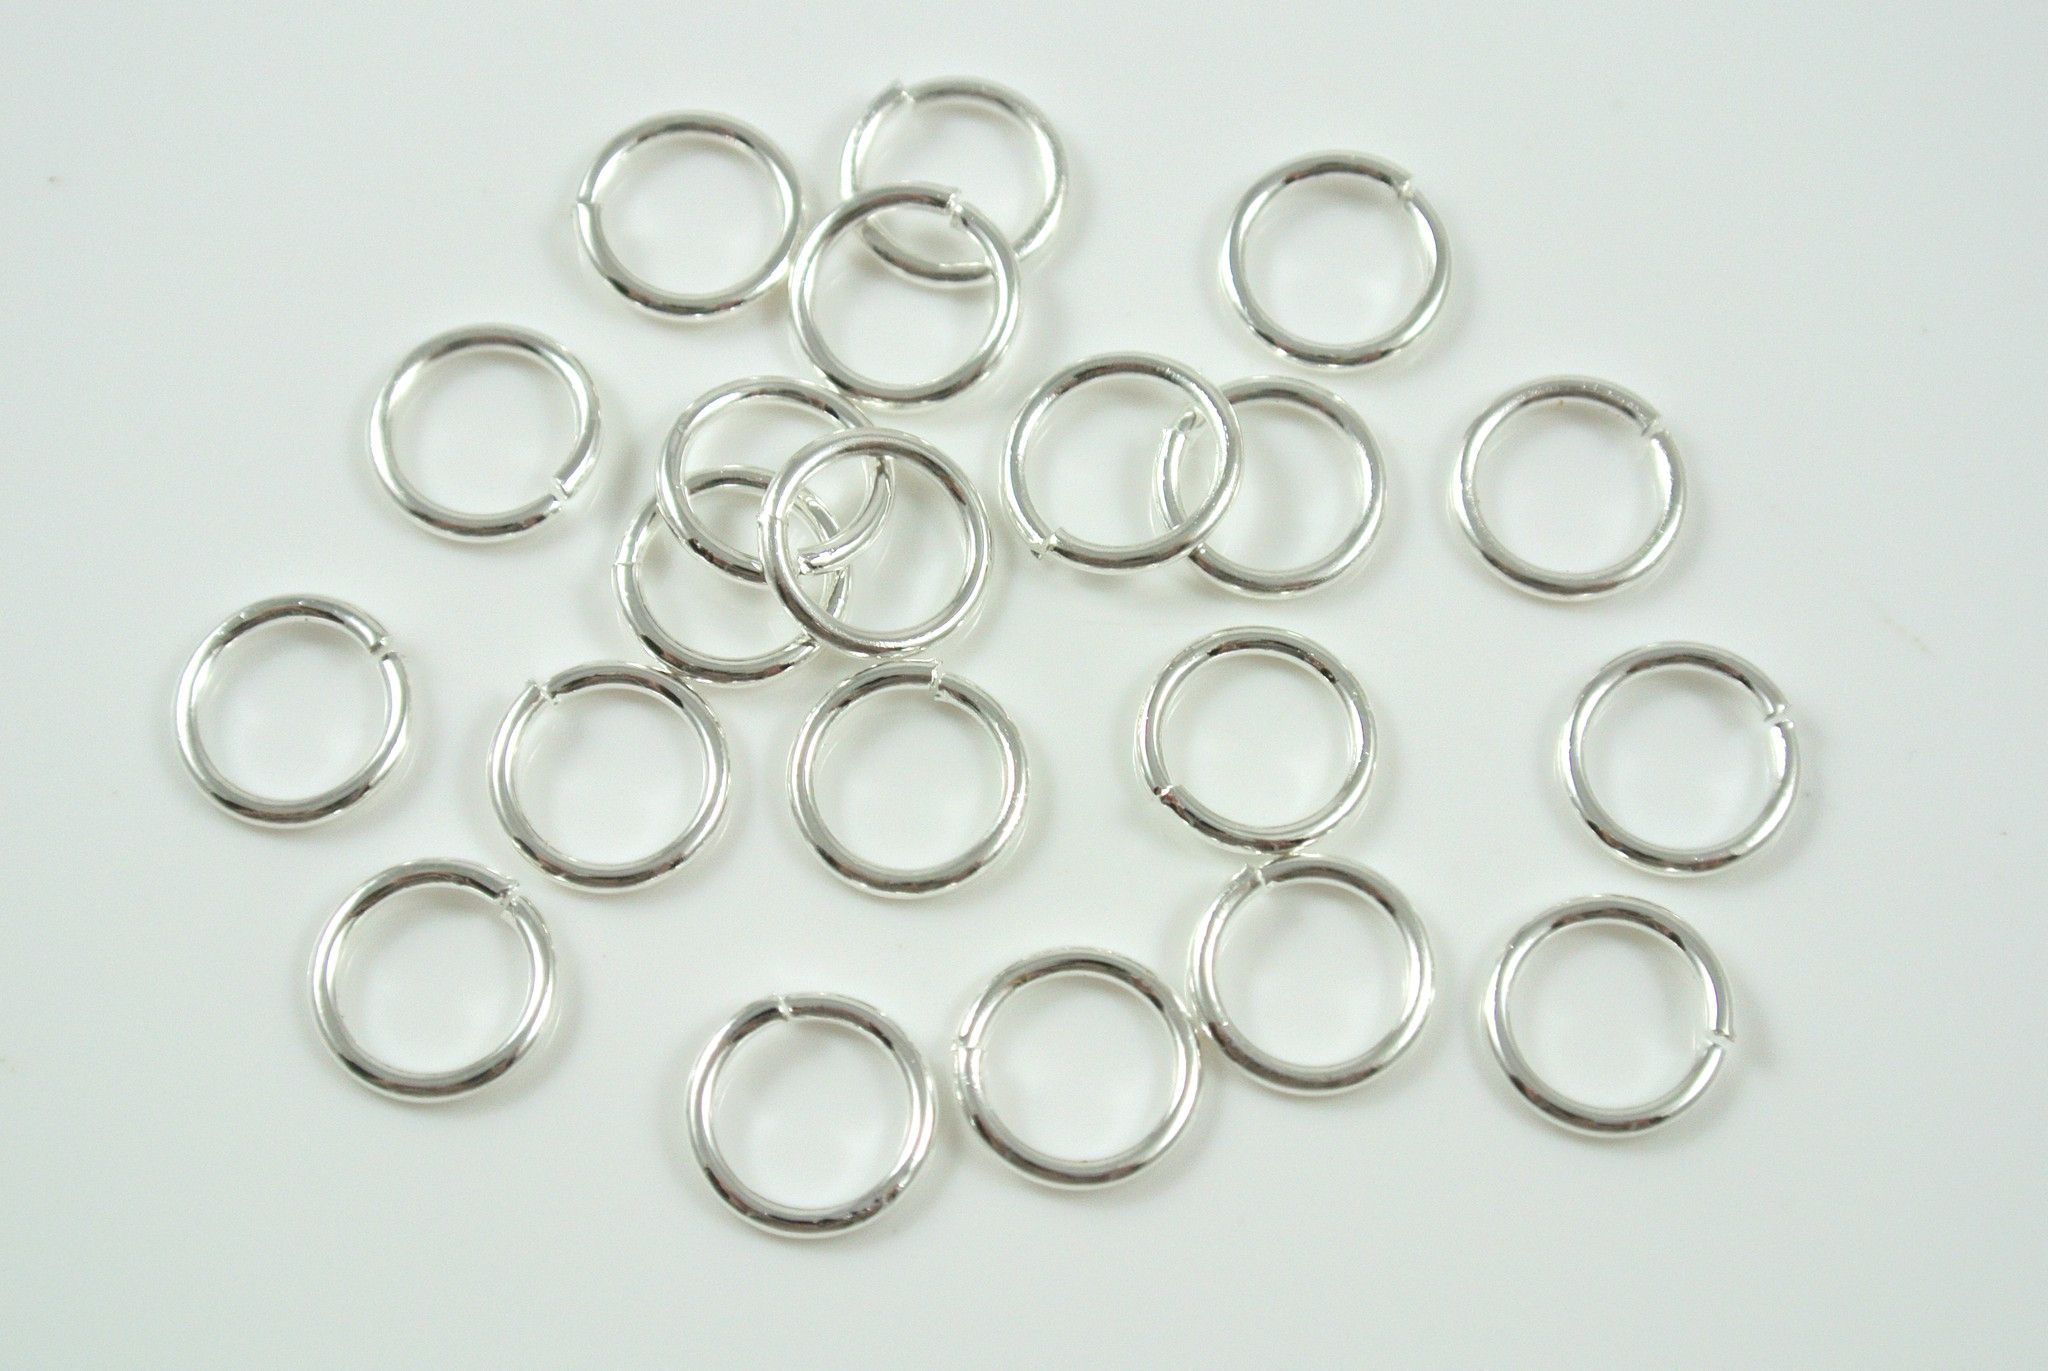 Jumpring Round Open Silver Electroplated 8mm 18g 50 Pieces